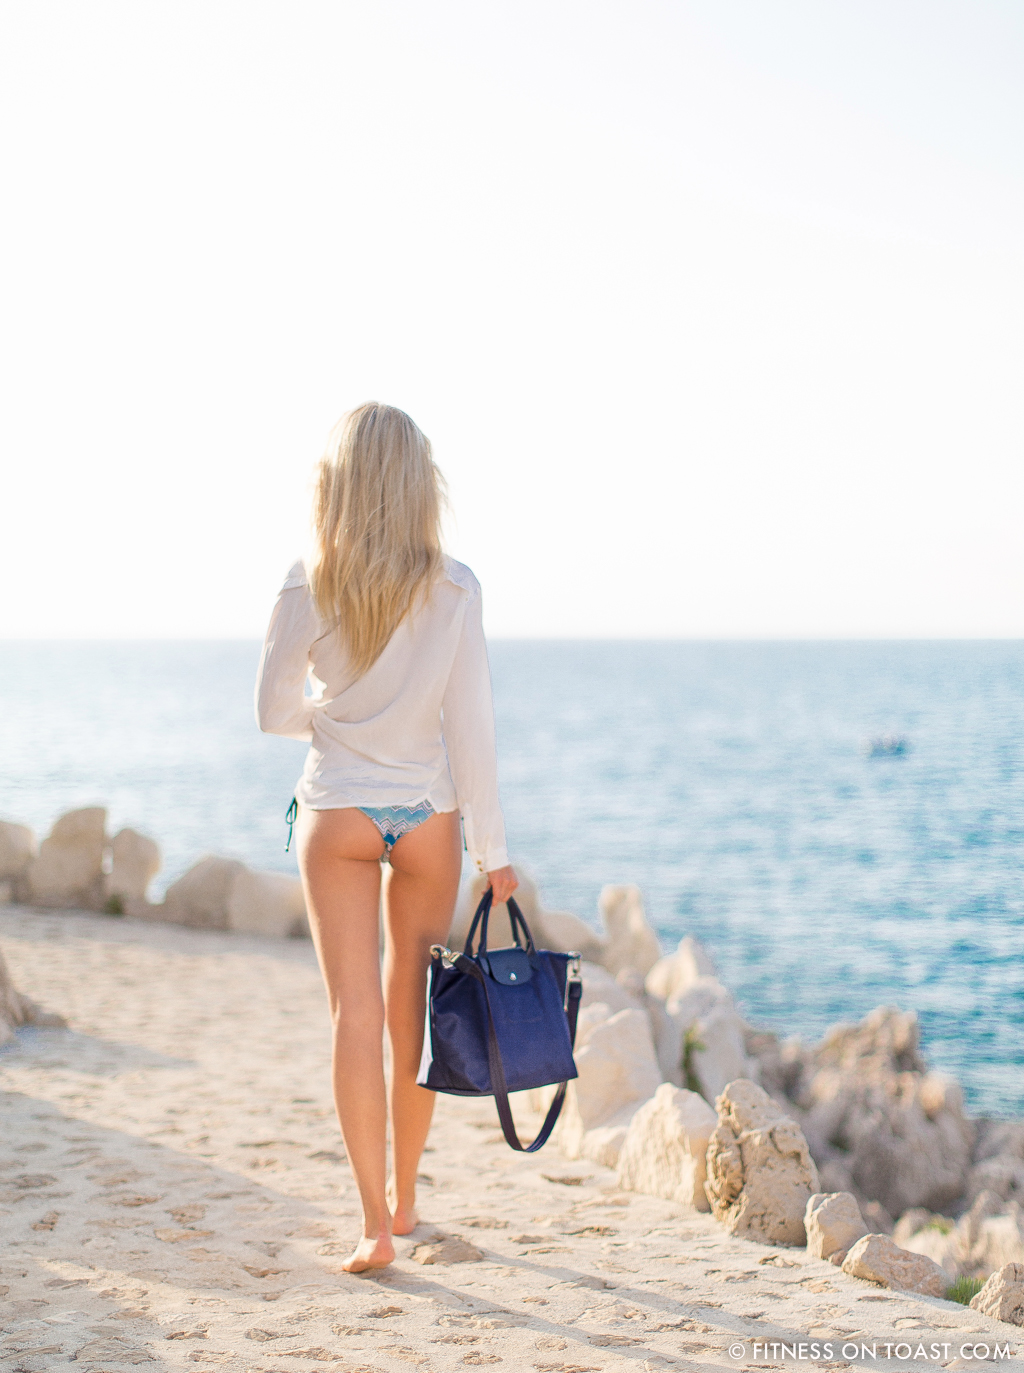 Fitness On Toast Faya Blog Girl Gym Healthy Workout Training Longchamp Missoni Swim Summer Bikini Blue Cap Ferrat French Riviera OOTD Swimwear Beach Summery Look-3